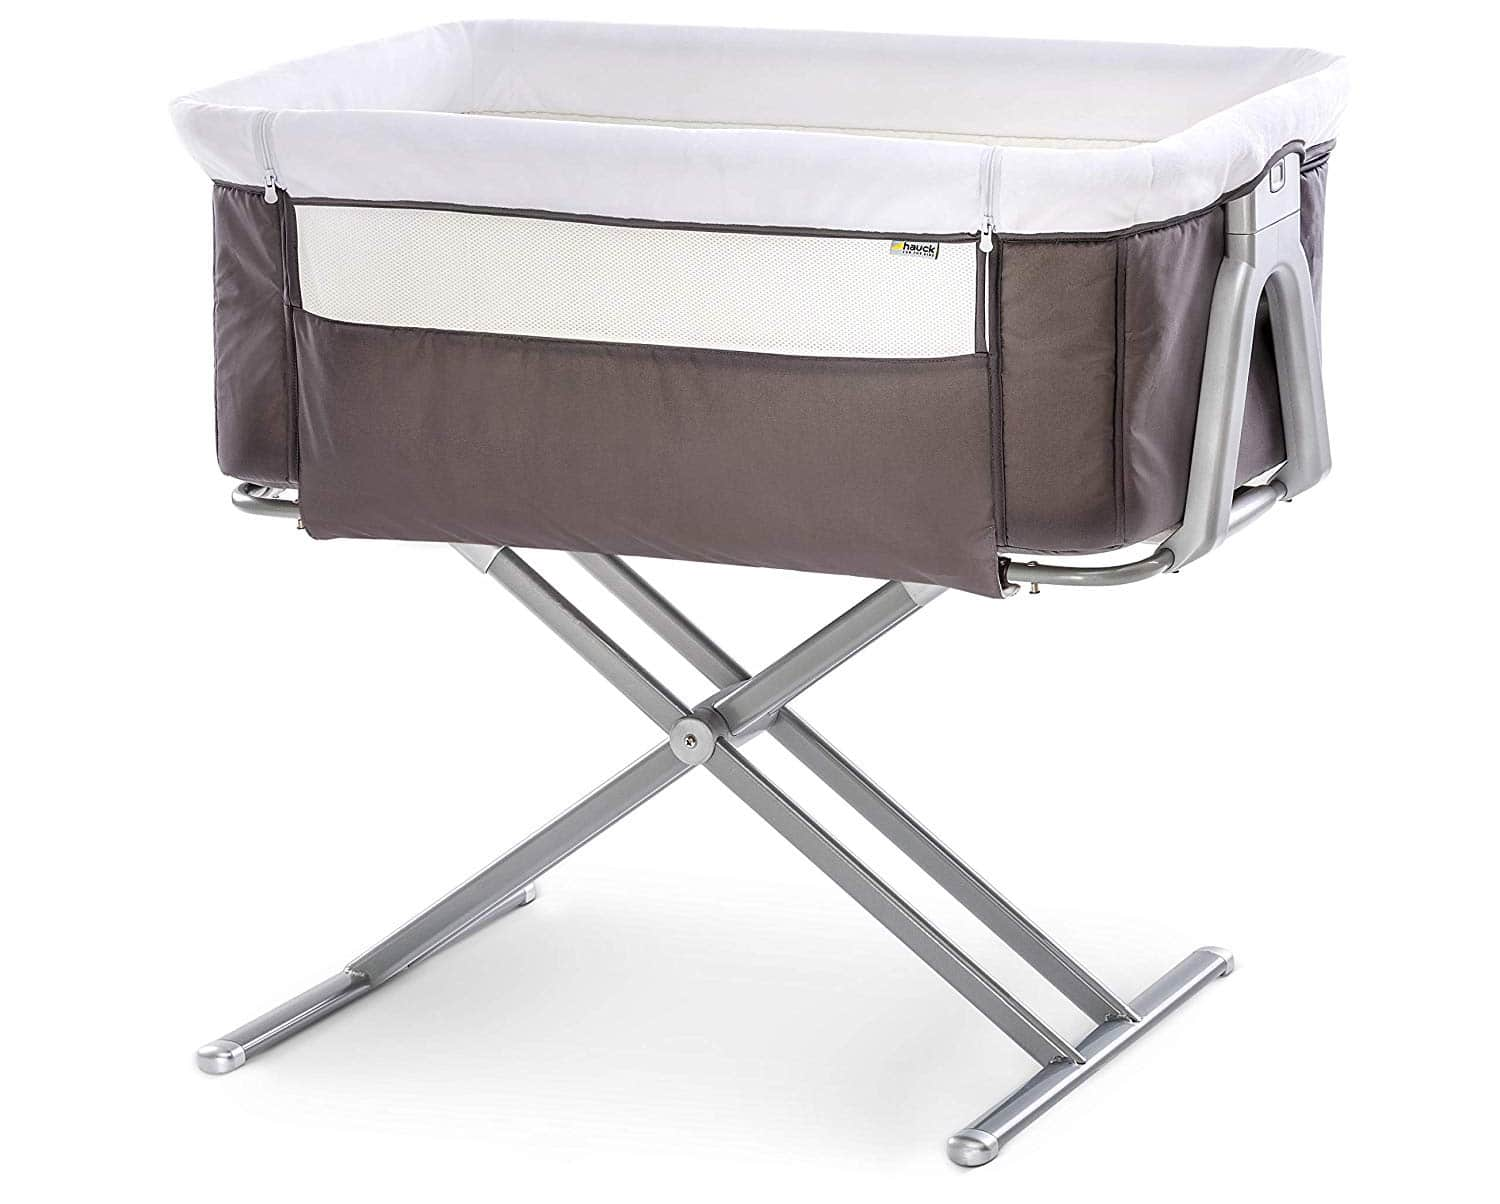 Hauck - Fun for Kids Face to Me Height-Adjustable Bassinet, Co-Sleeping Cradle, Folding Bedside Crib